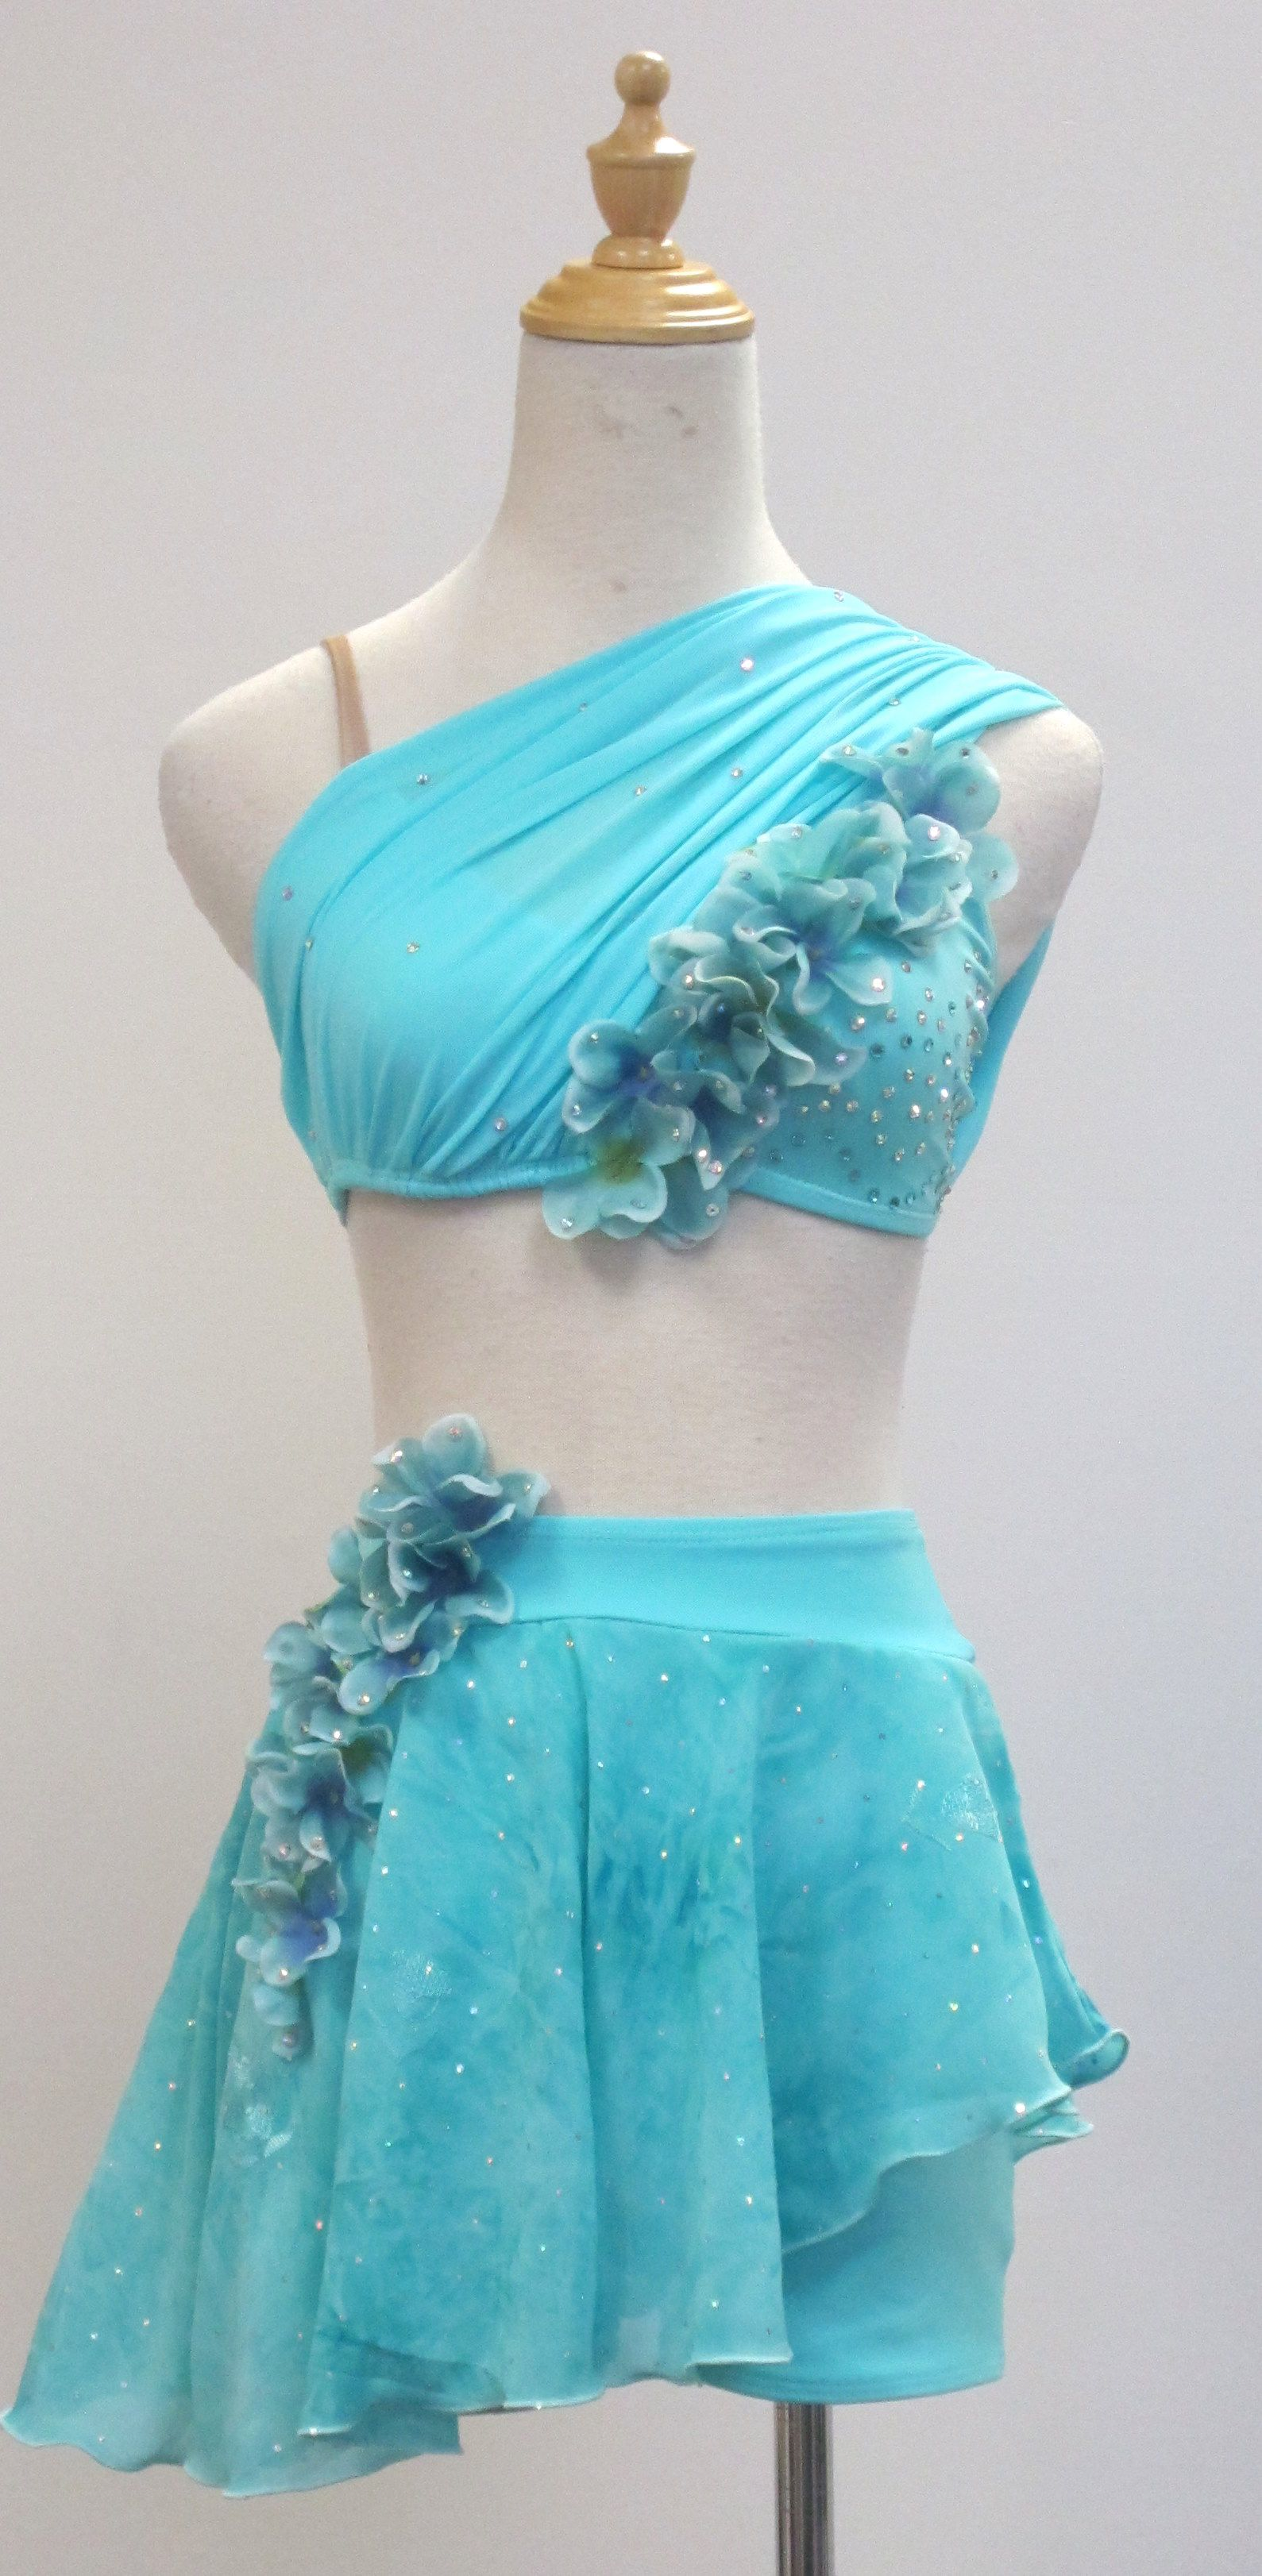 Put some mesh in the middle and I would wear this :)